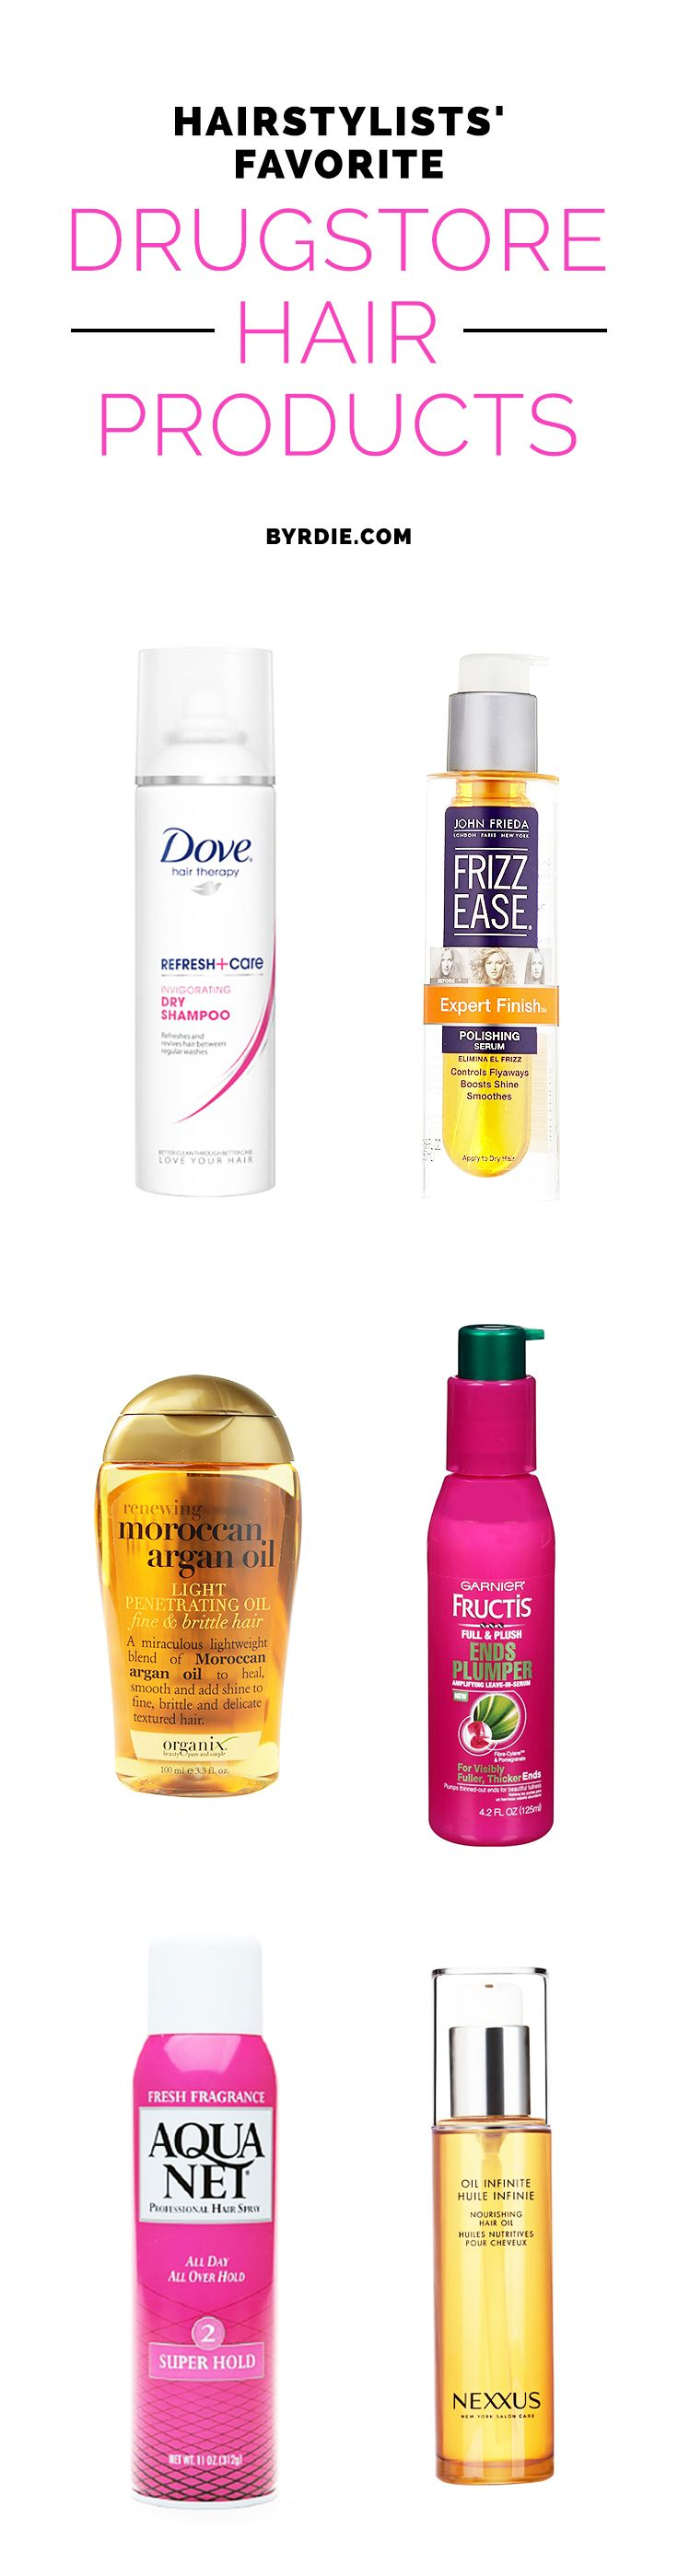 best Hair products images on Pinterest  Hair care Hair dos and